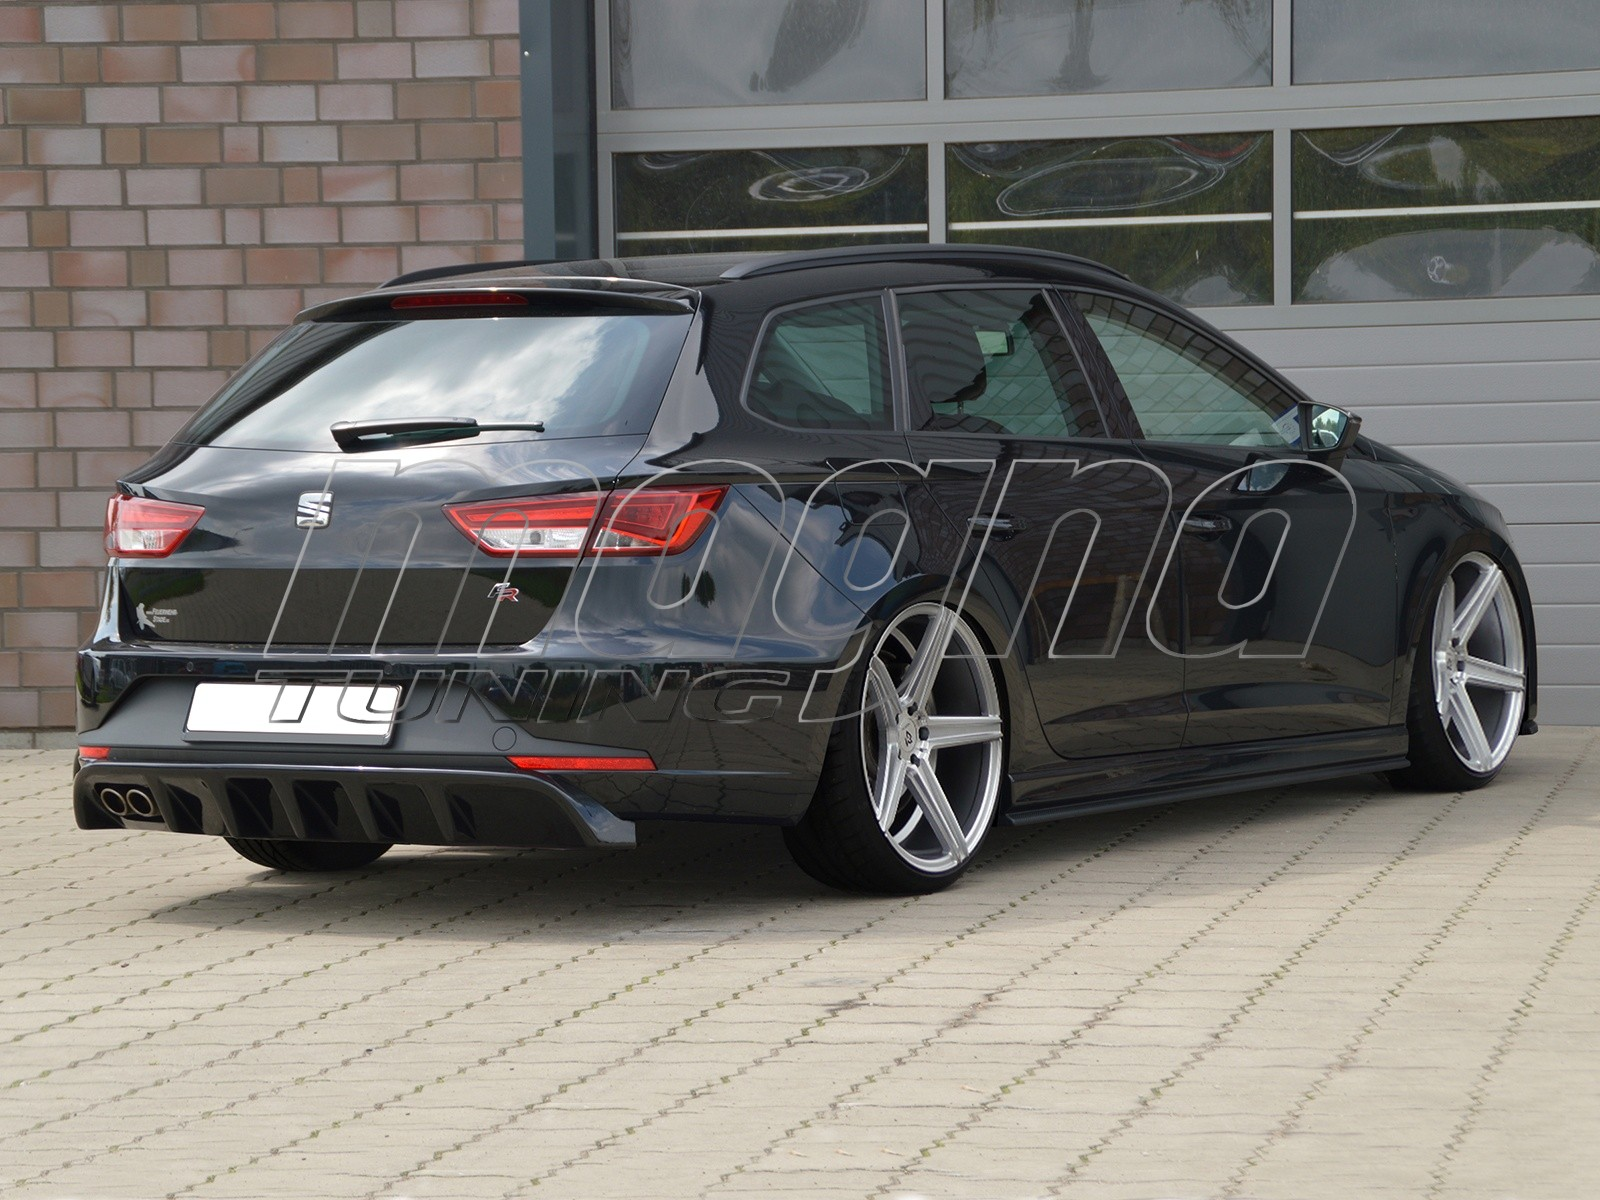 seat leon 5f fr st invido rear bumper extension. Black Bedroom Furniture Sets. Home Design Ideas